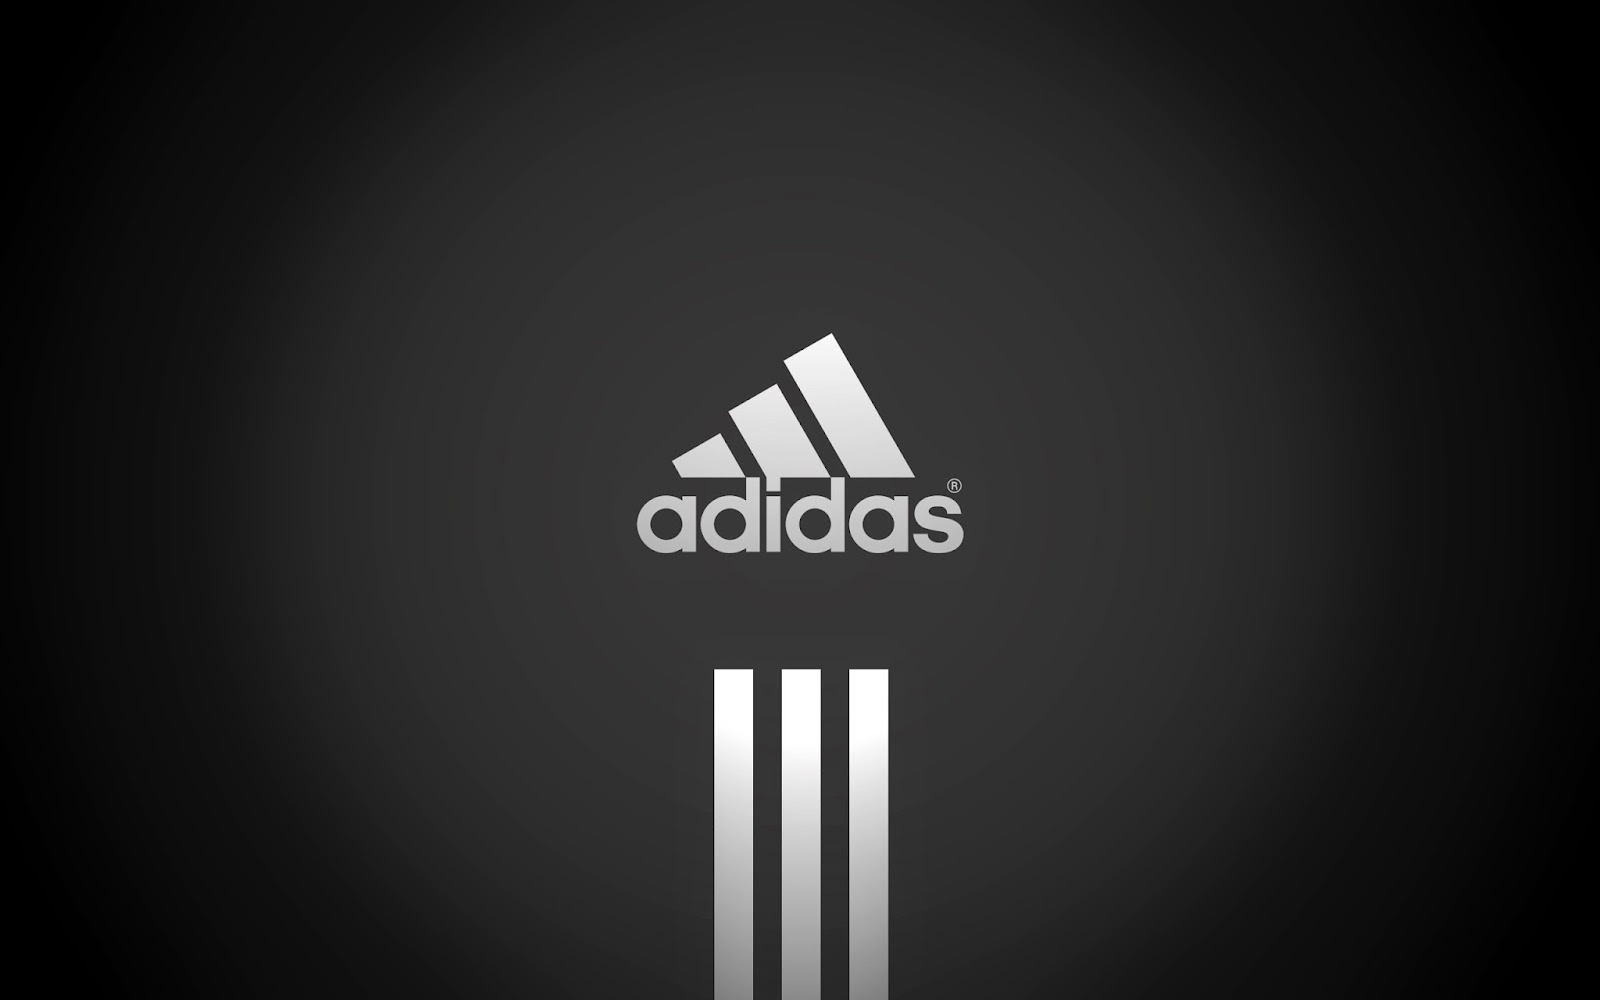 Adidas logo all logo pictures - Adidas wallpaper hd ...